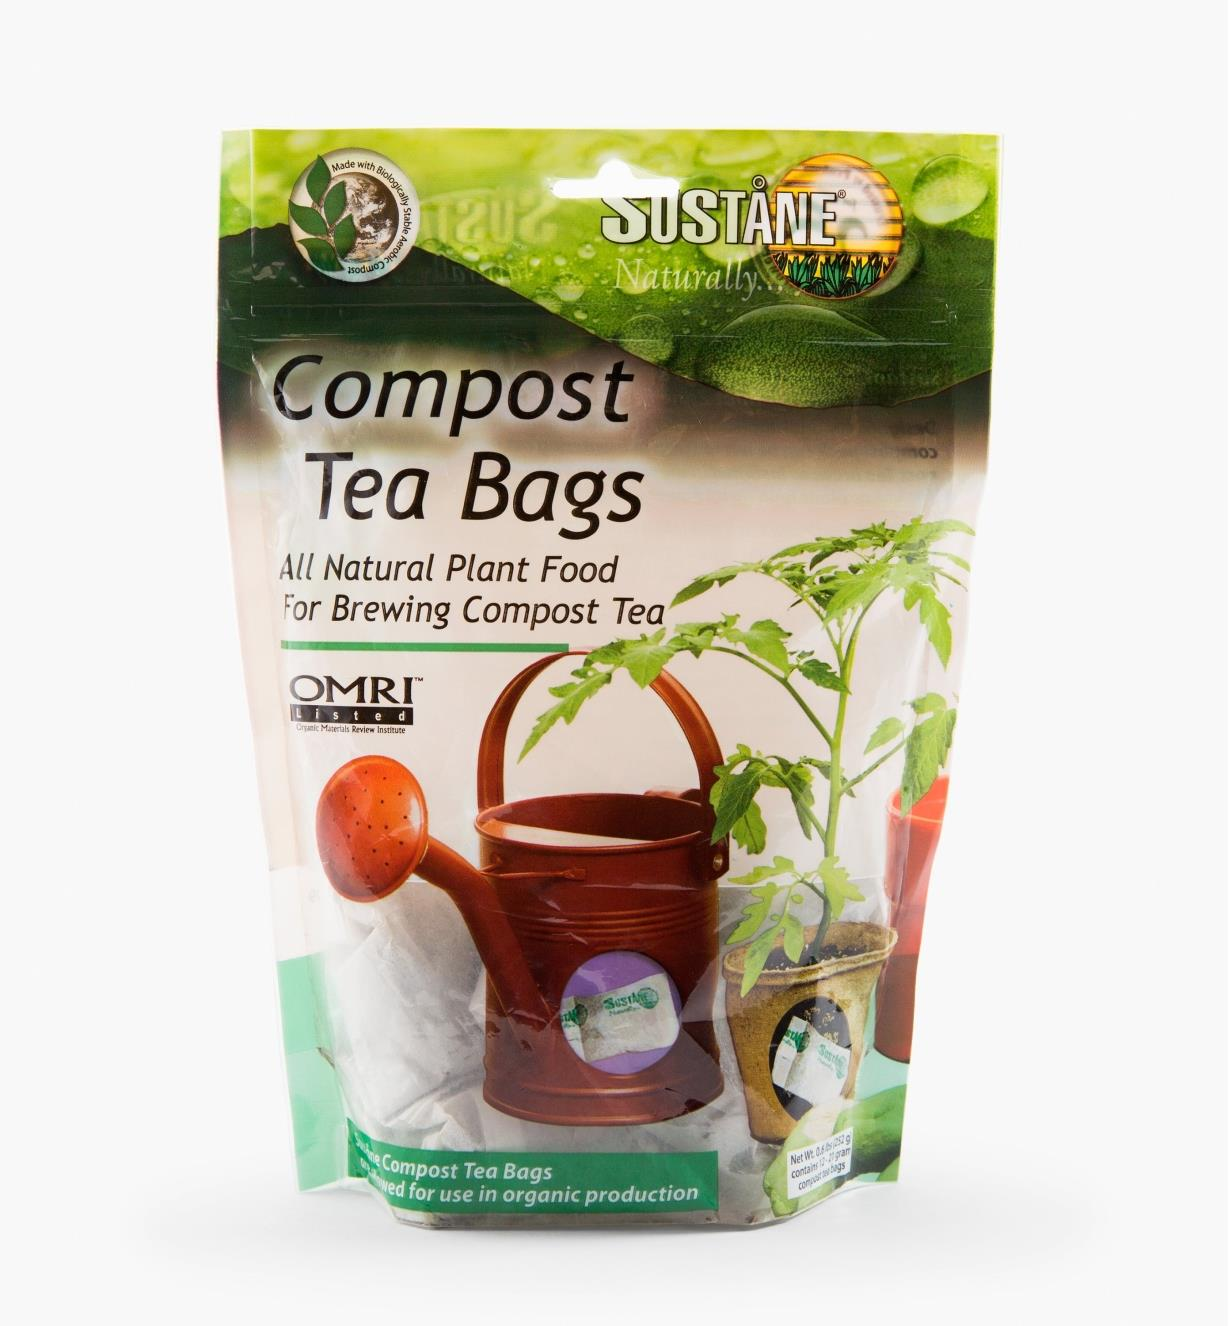 HK706 - Compost Tea Bags, pkg. of 12